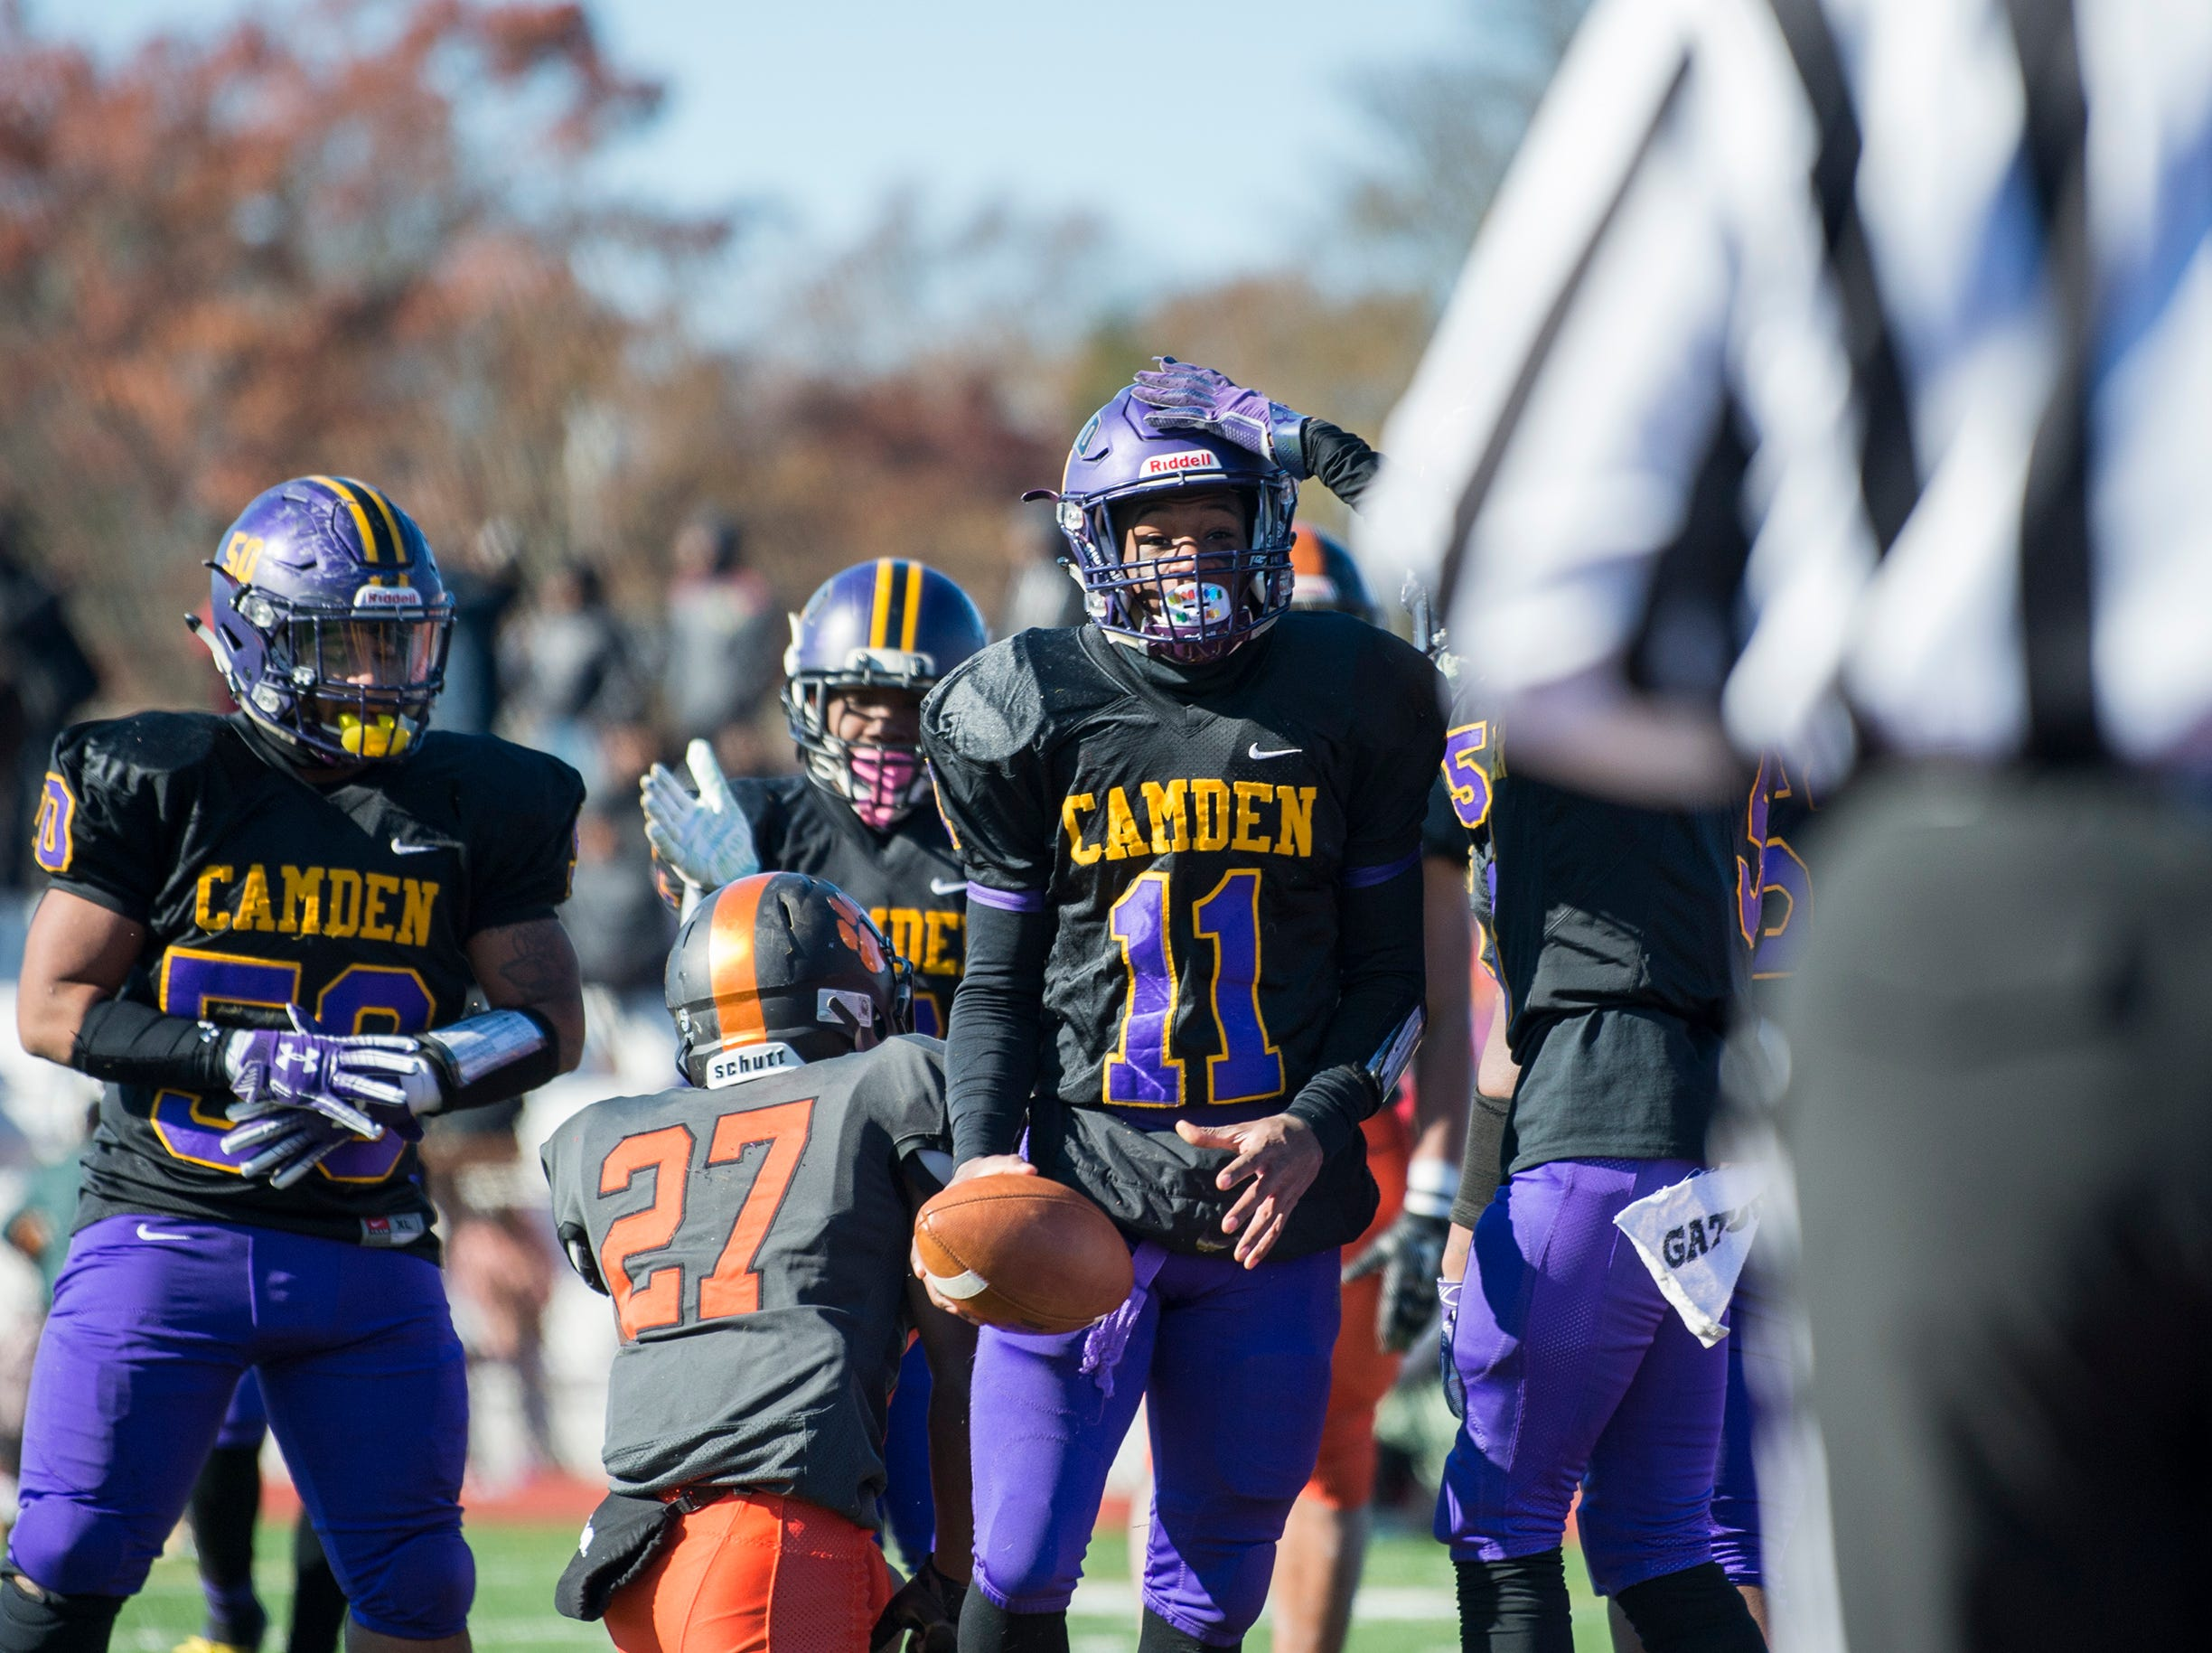 Camden's Monte Williams (11) is patted on the head after scoring a touchdown during an annual Camden-Woodrow Wilson Thanksgiving game Thursday, Nov. 22, 2018 in Camden, N.J. Camden won 39-28.